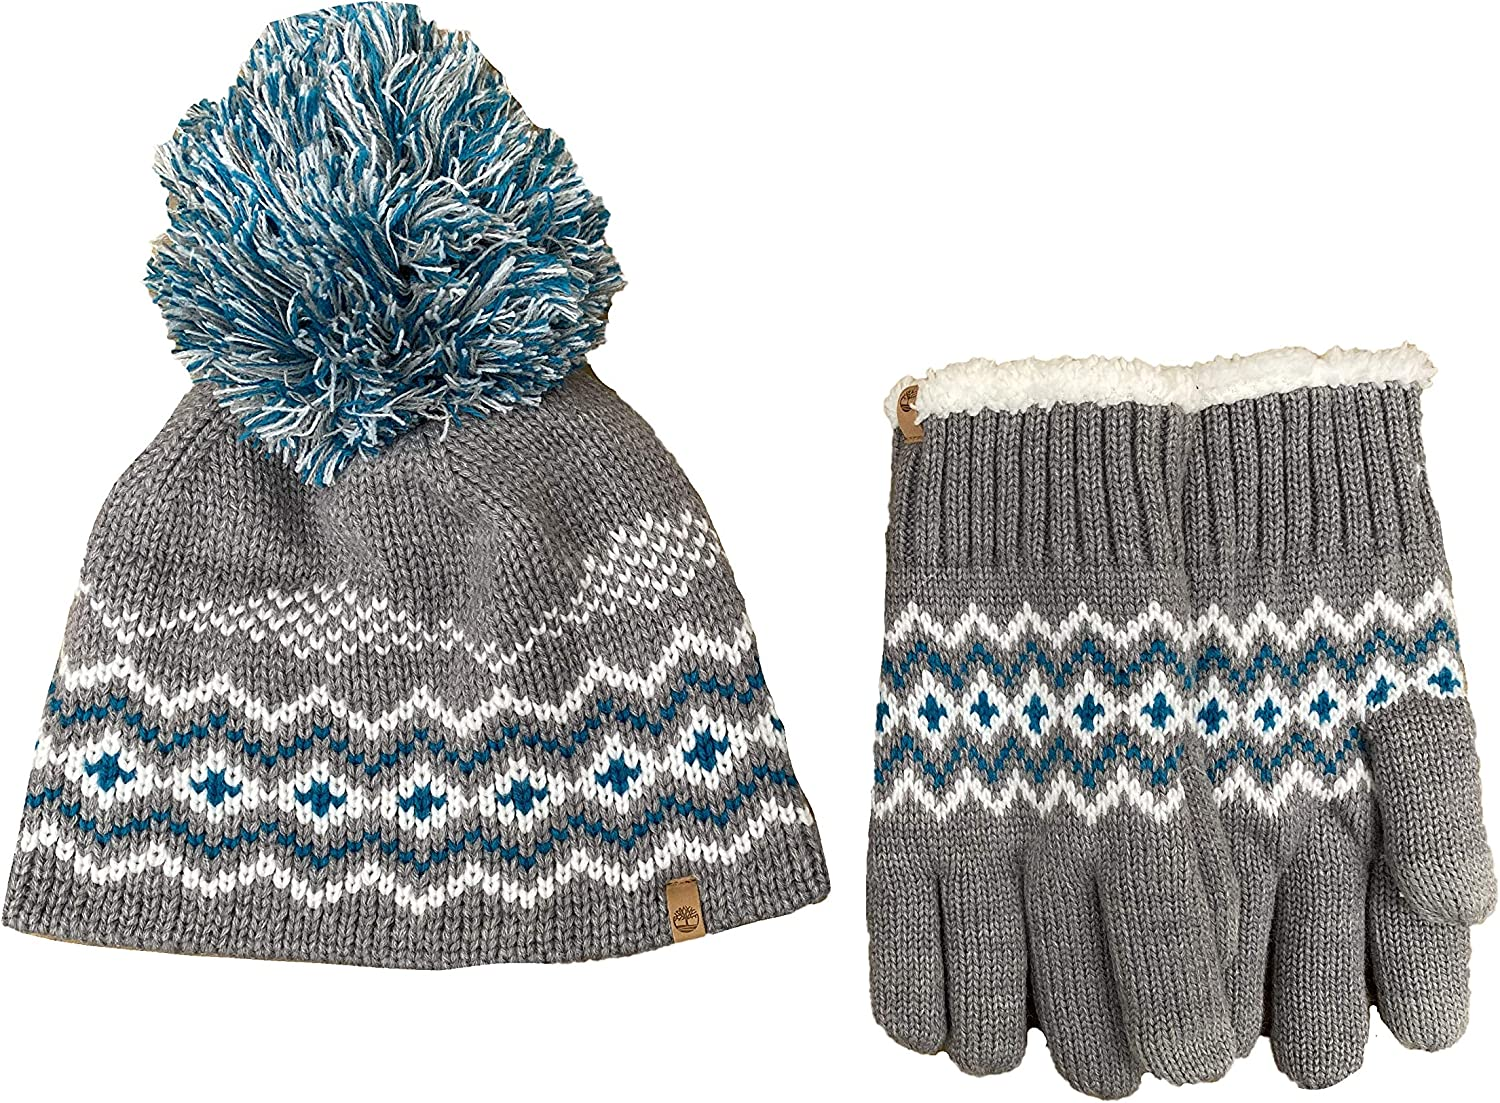 Timberland Women`s Fair Isle Pom Pom Beanie and Gloves Boxed 2 Piece Set